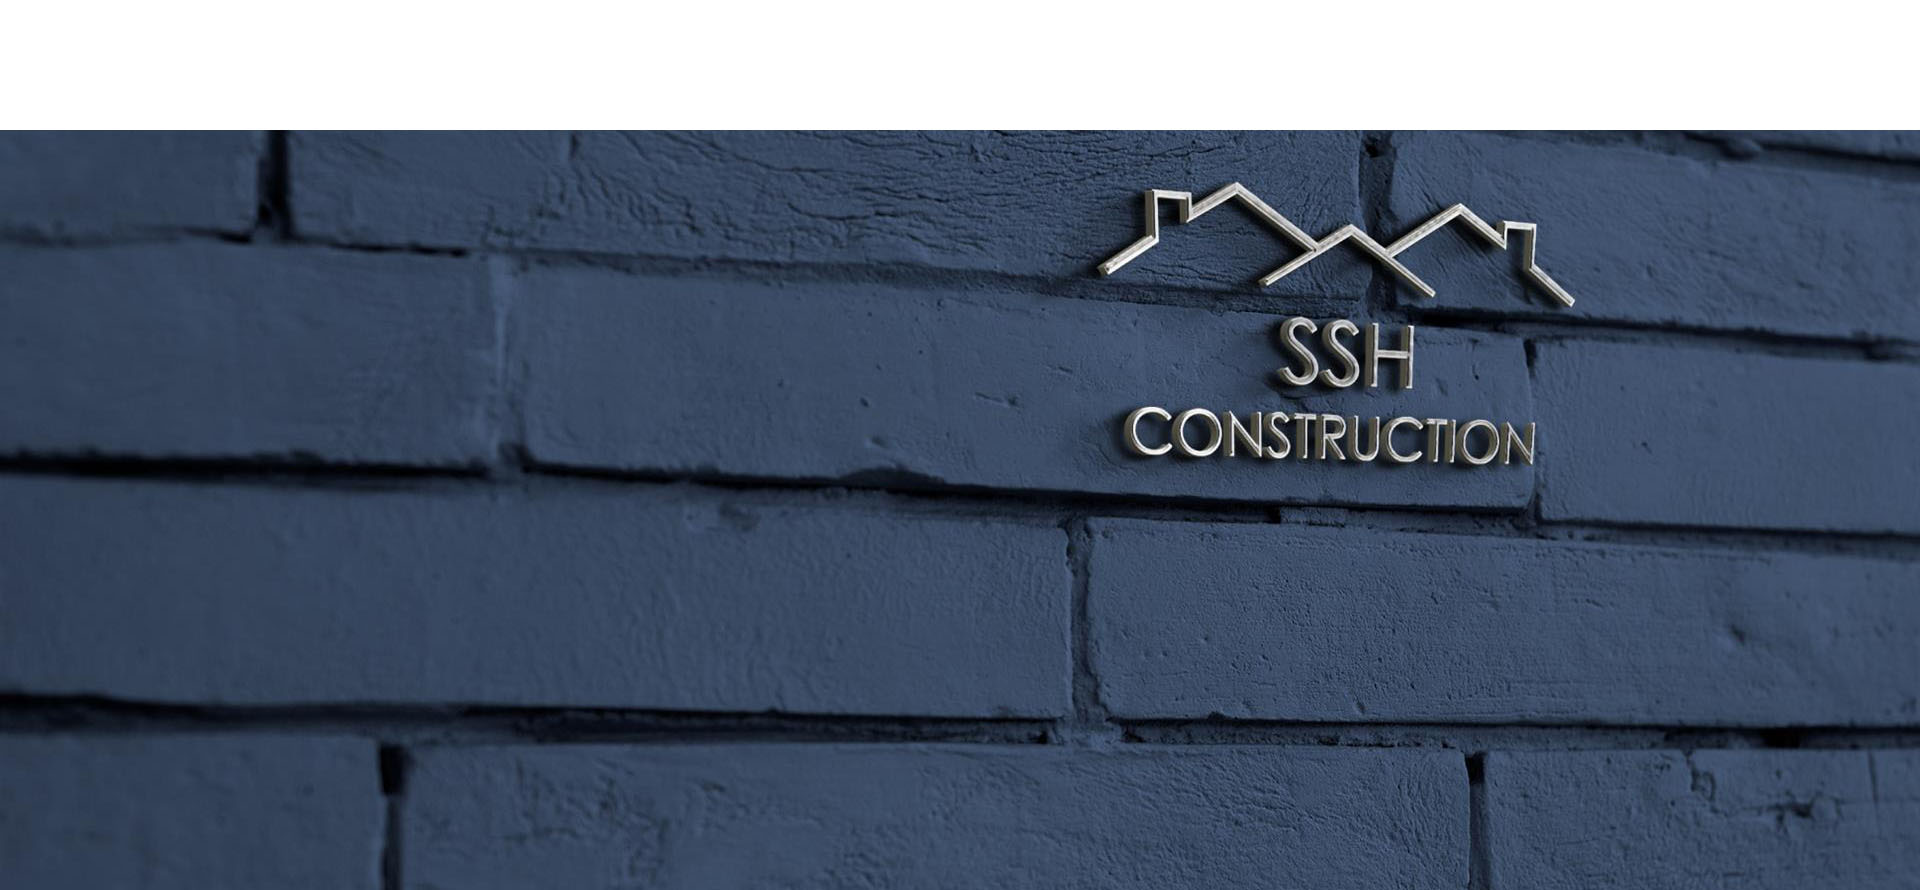 SSH CONSTRUCTION LTD, Prestigious quality standard followed throughout all projects